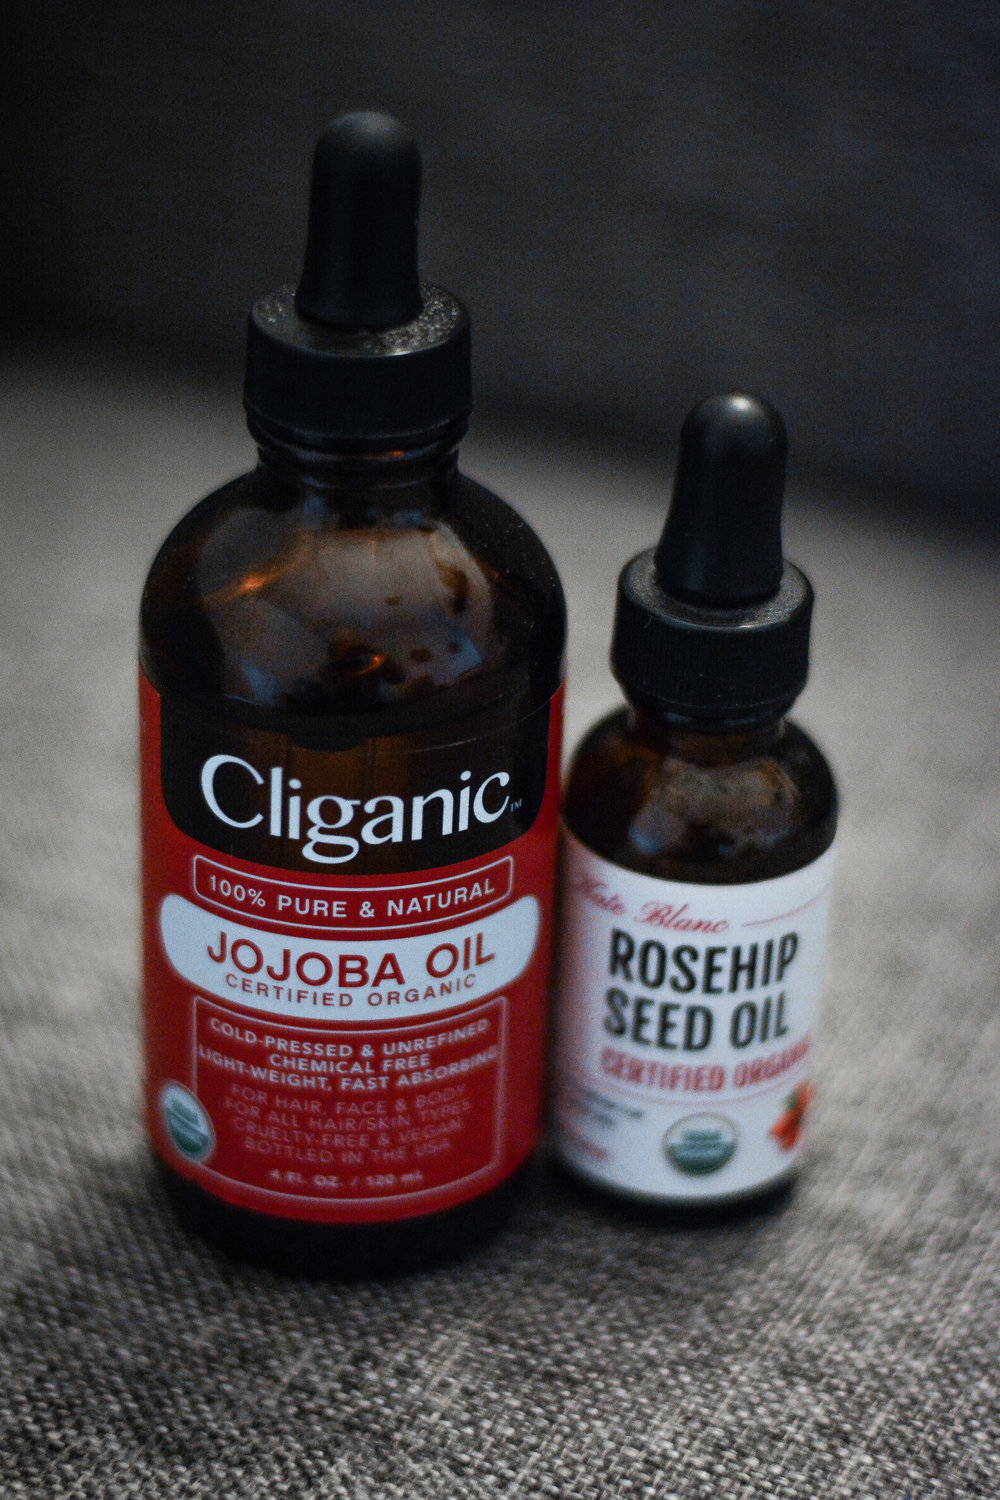 Jojoba oil can be used as a moisture rich treatment for dry and cracked skin, as well as wrinkles. You can also use it daily for an all around natural glow. This is why I use it as the foundation of my moisturizing routine!